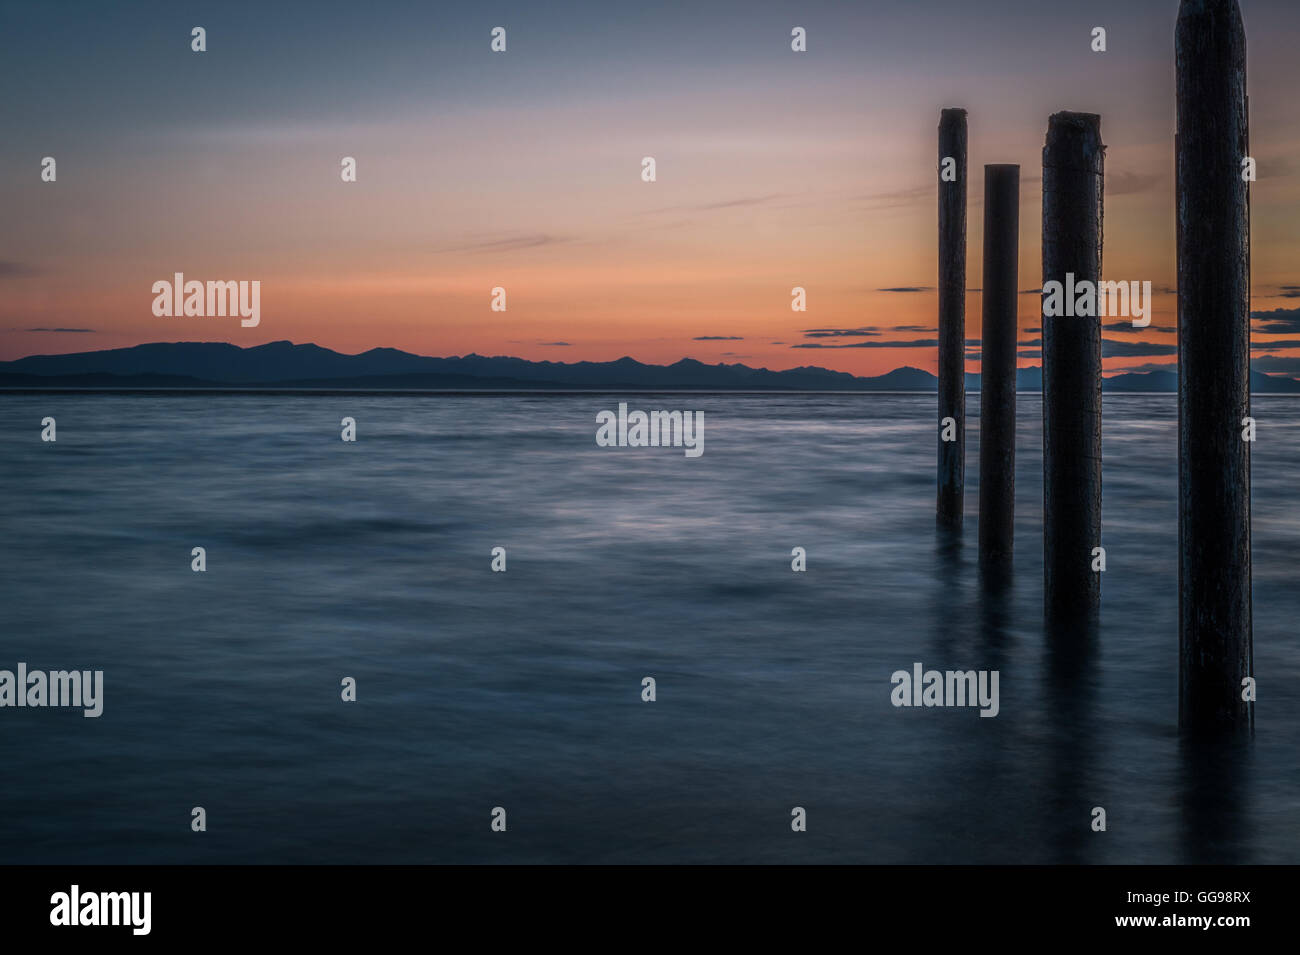 Night picture of Point Roberts pilings and silky water at night time - Stock Image